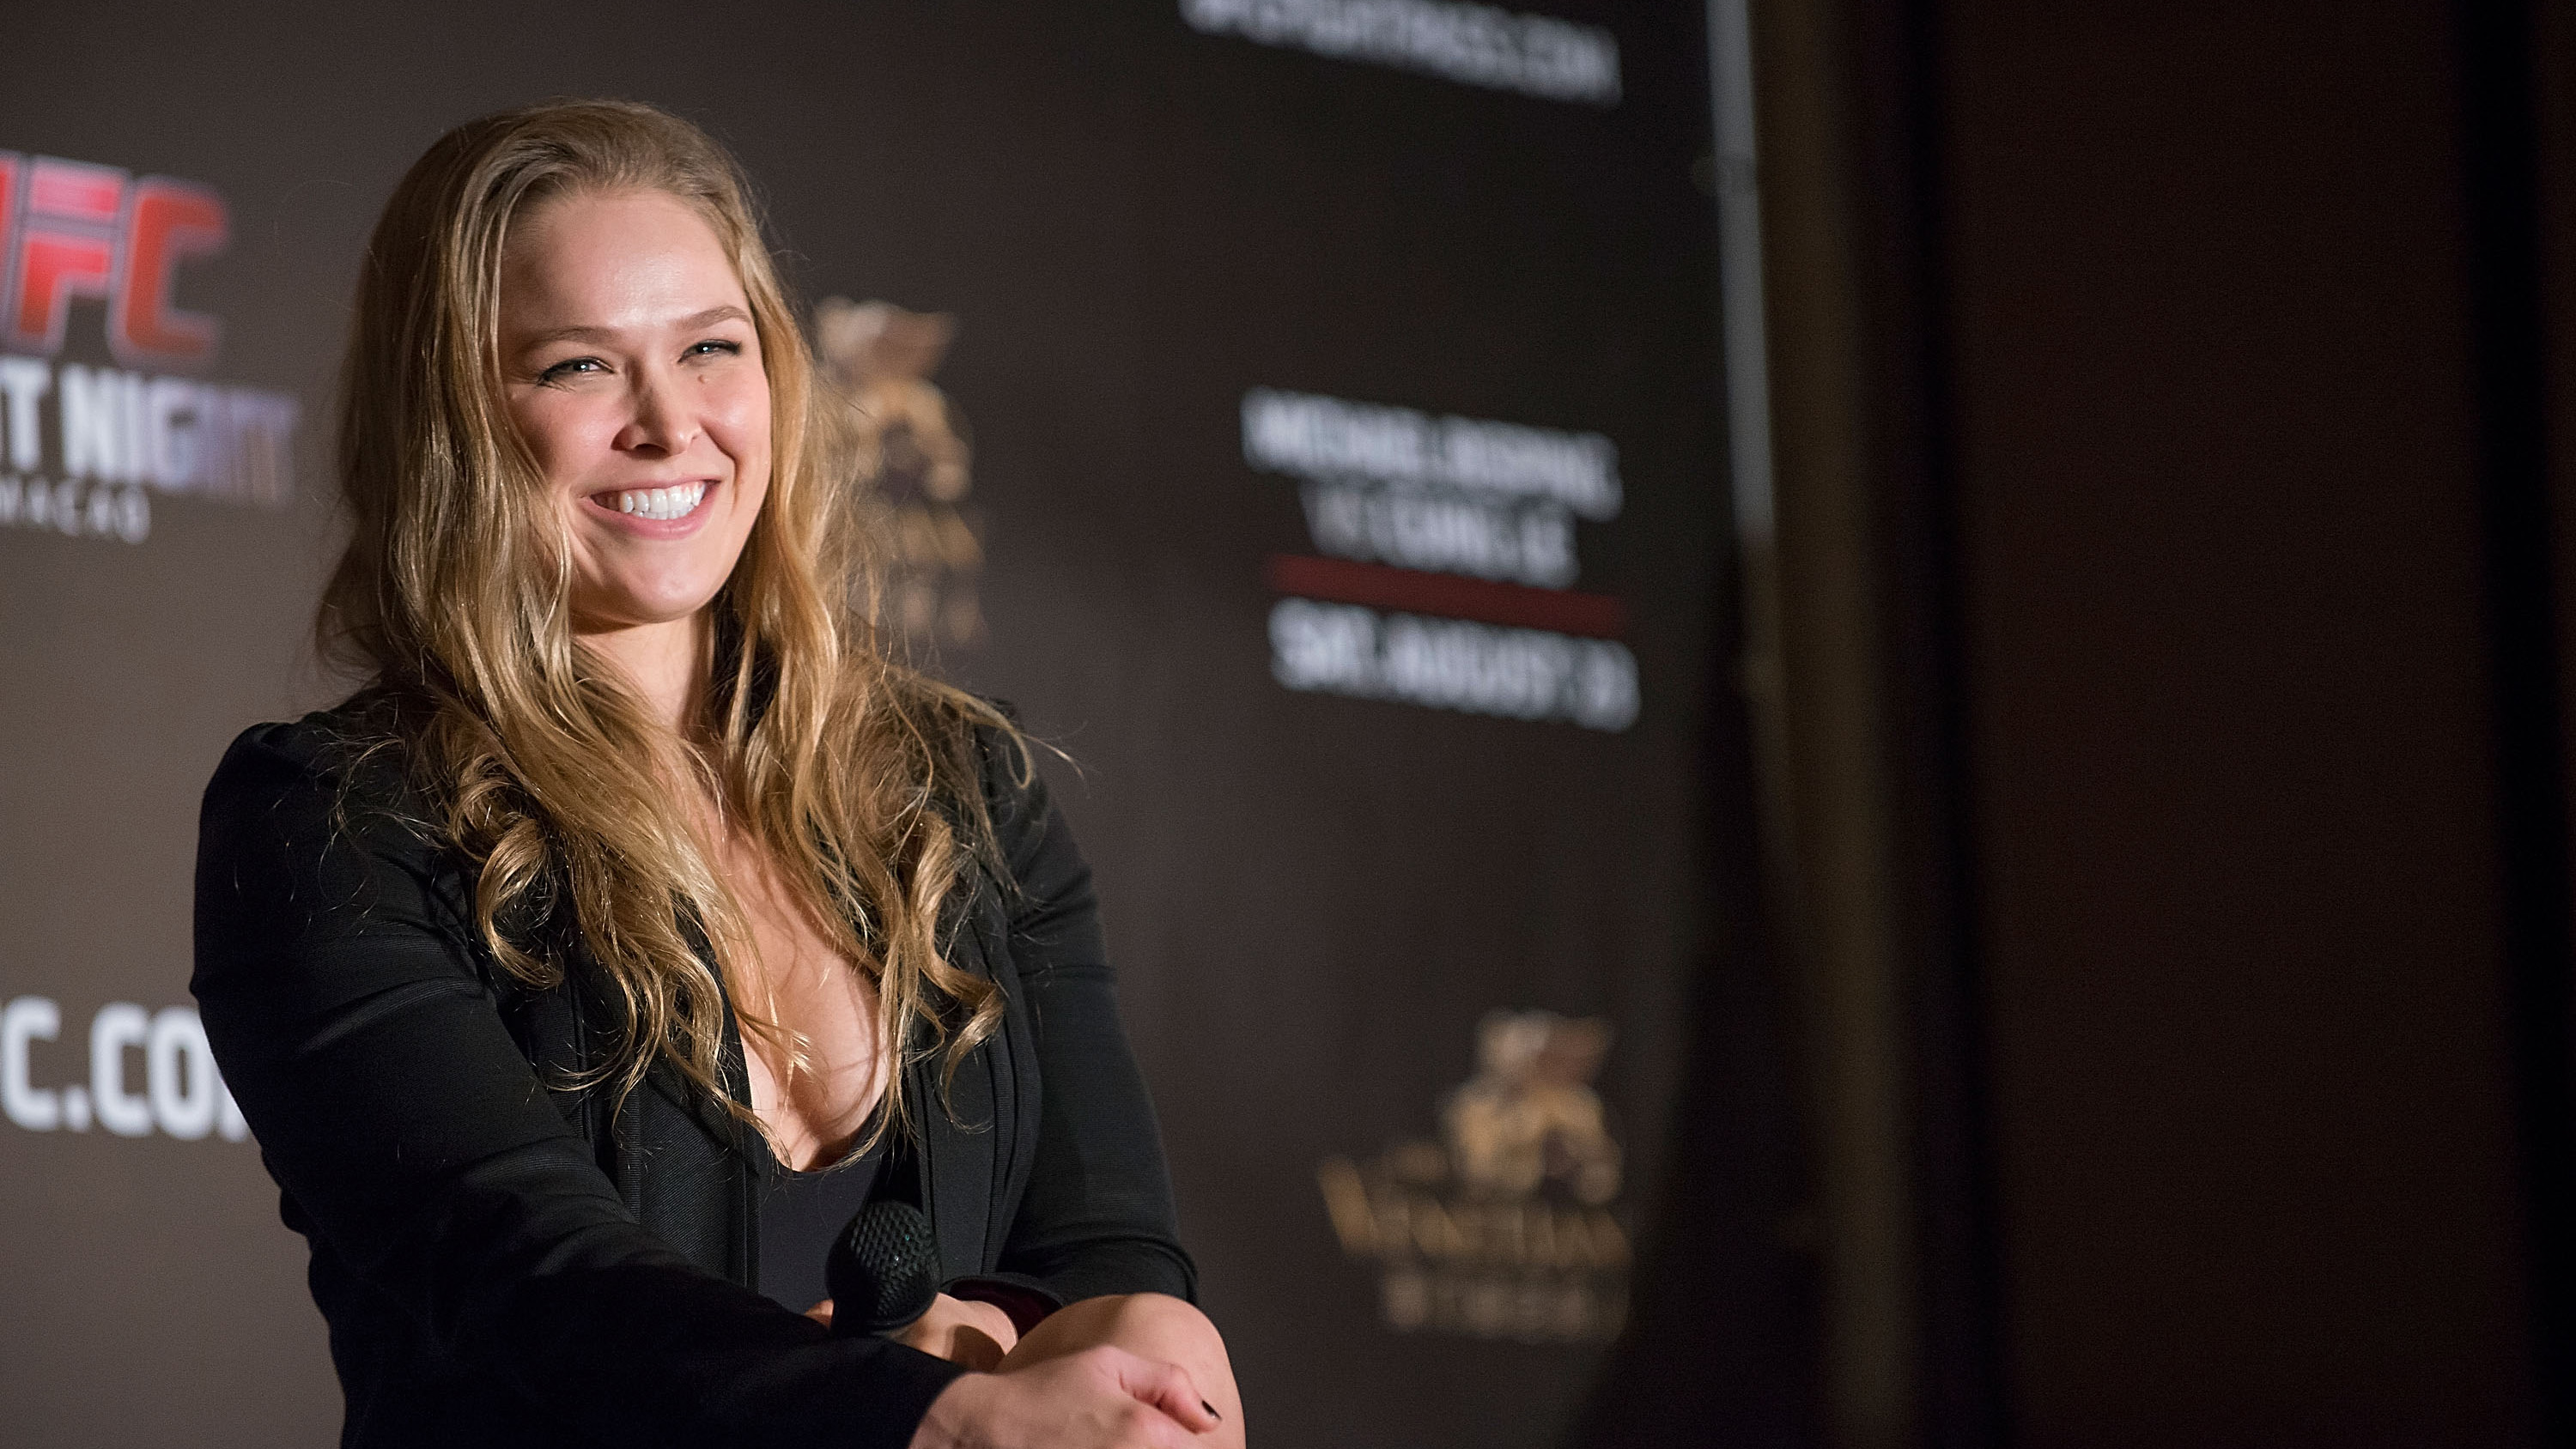 VIDEO   Road House Remake: Ronda Rousey To Star As Patrick Swayzeu0027s  Character In Film   SI.com